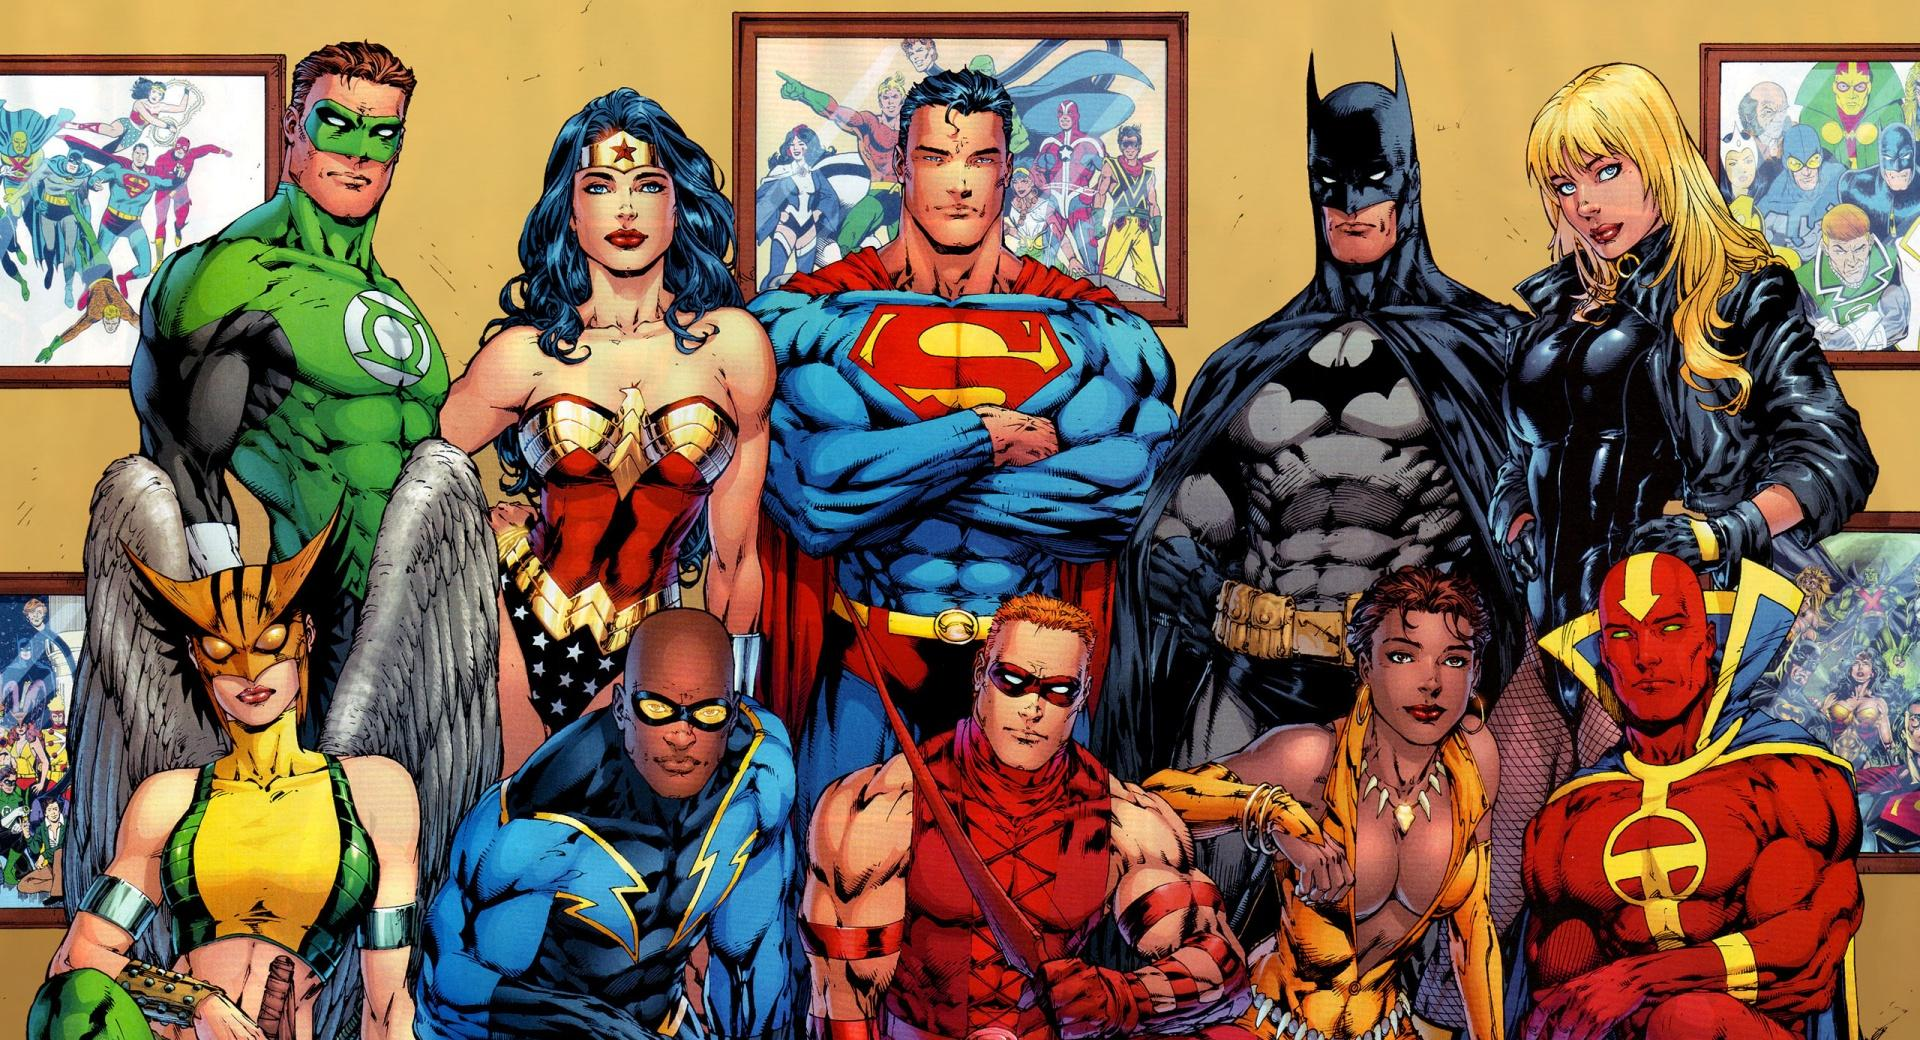 DC Comics Superheroes at 640 x 960 iPhone 4 size wallpapers HD quality